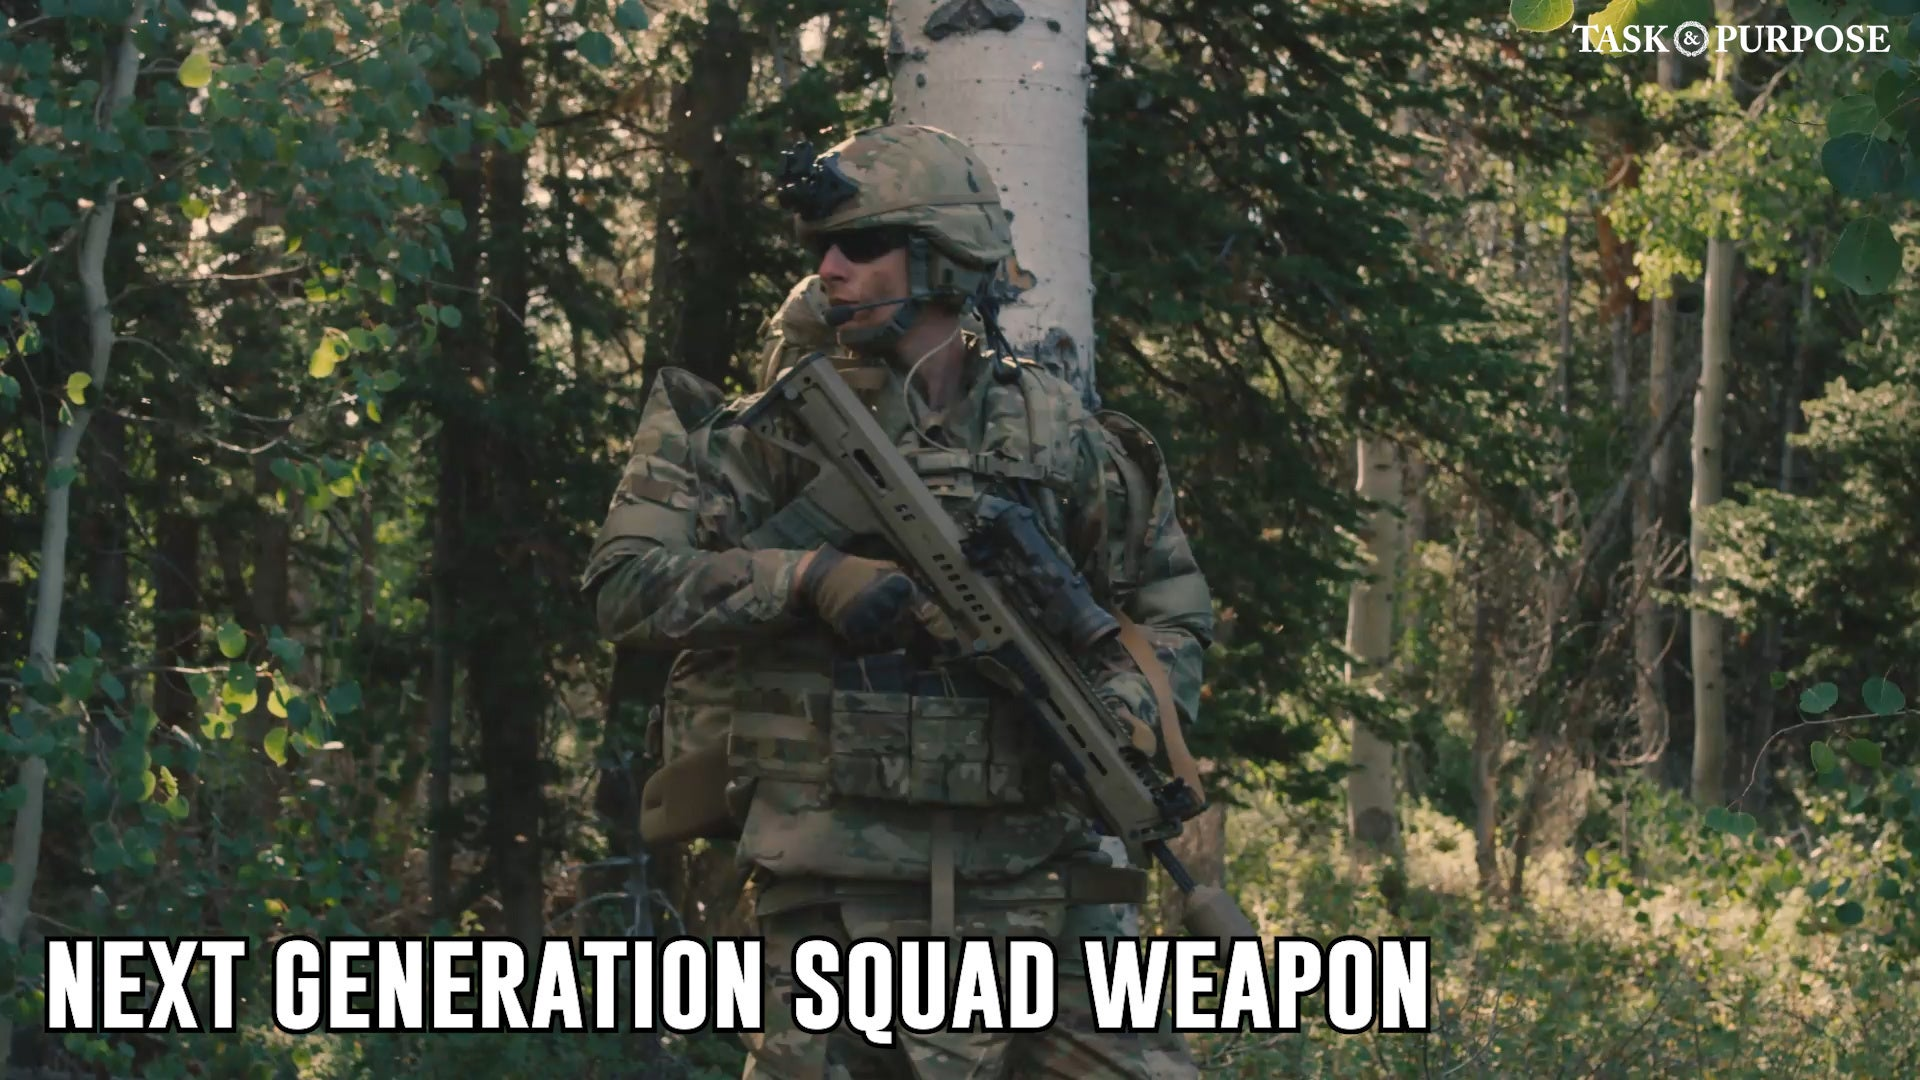 Video: Meet one of contenders for the Army's Next Generation Squad Weapon